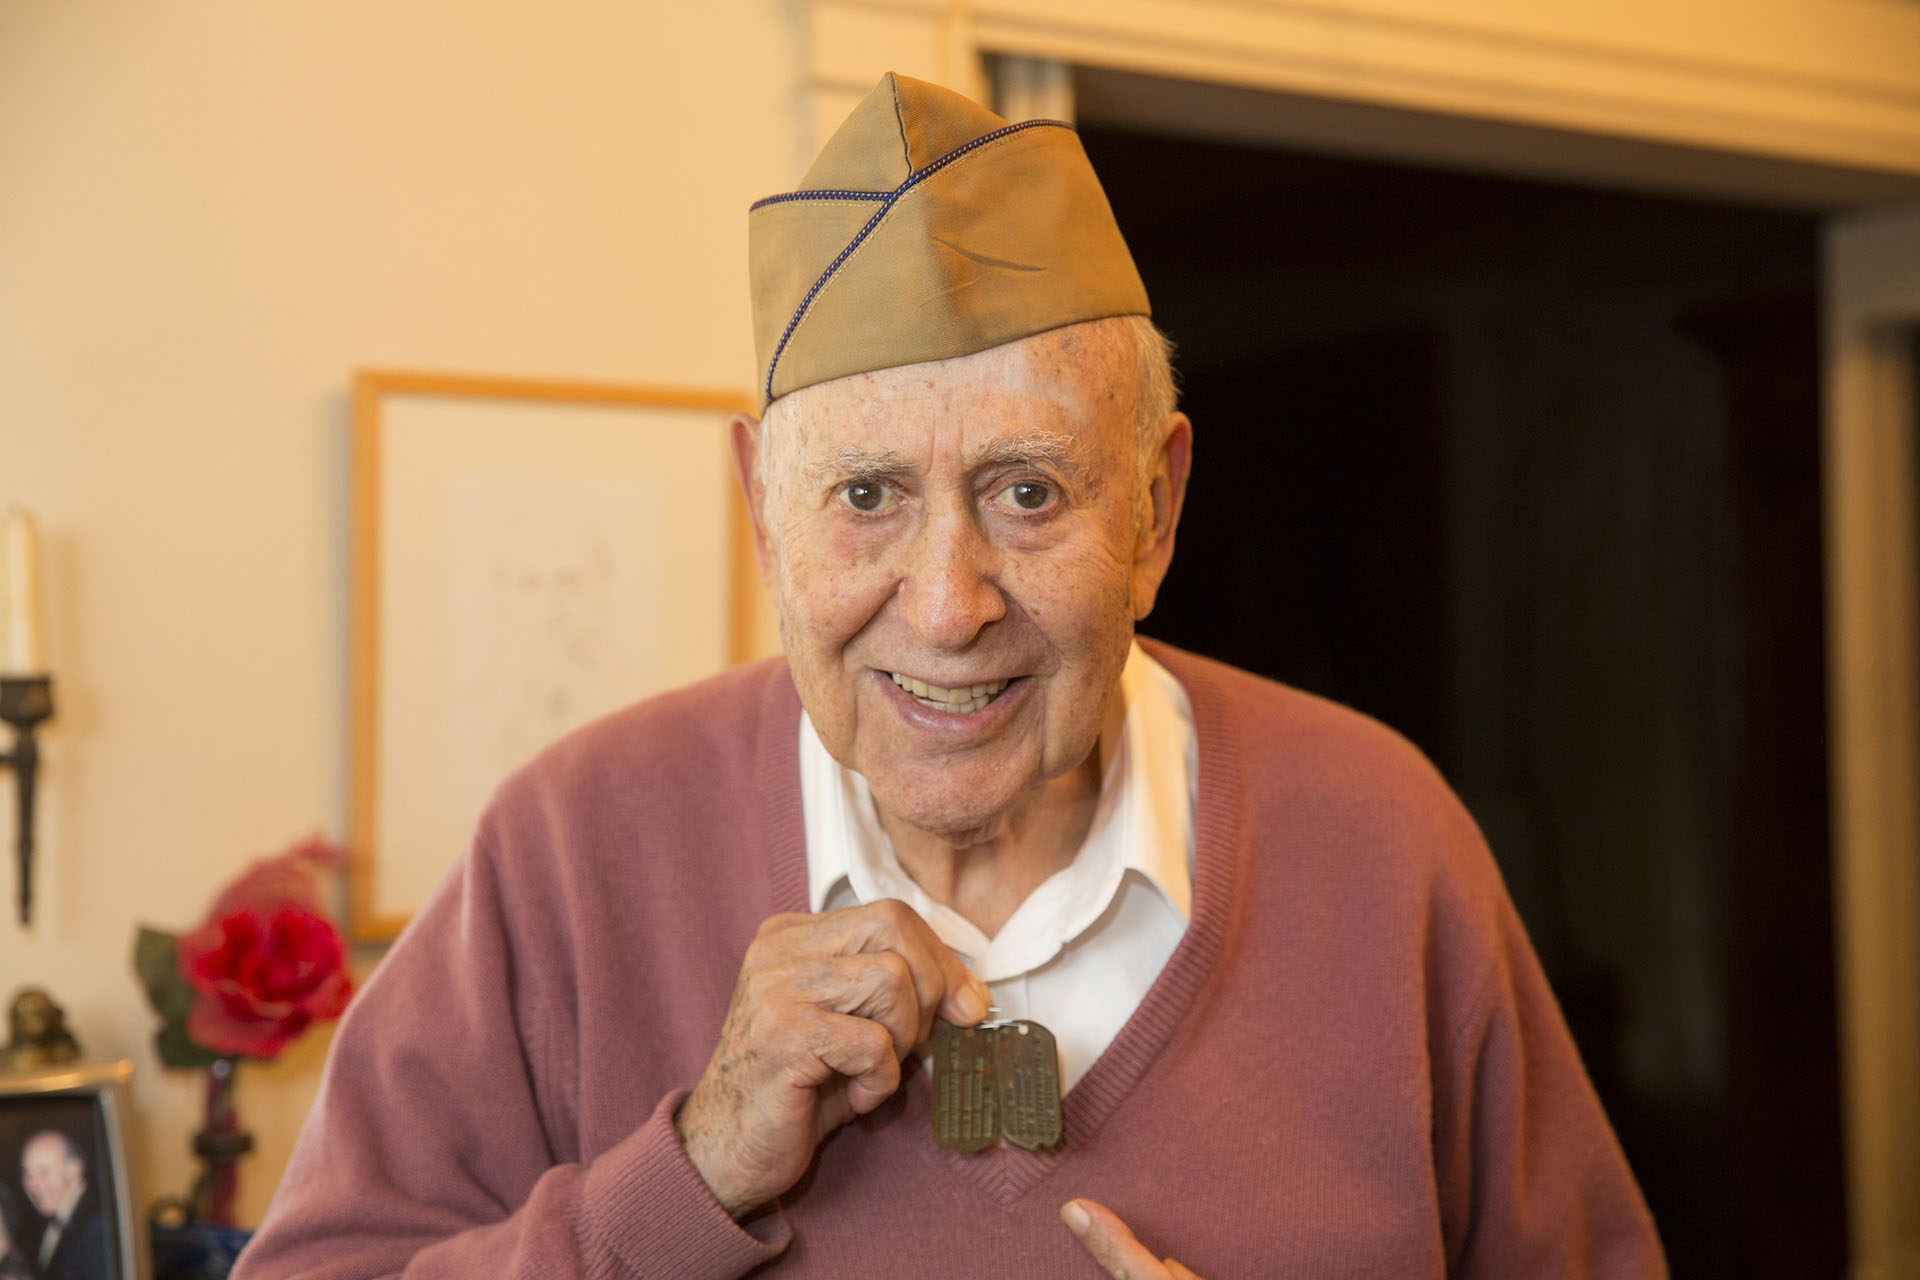 Carl Reiner with his WWII dog tag